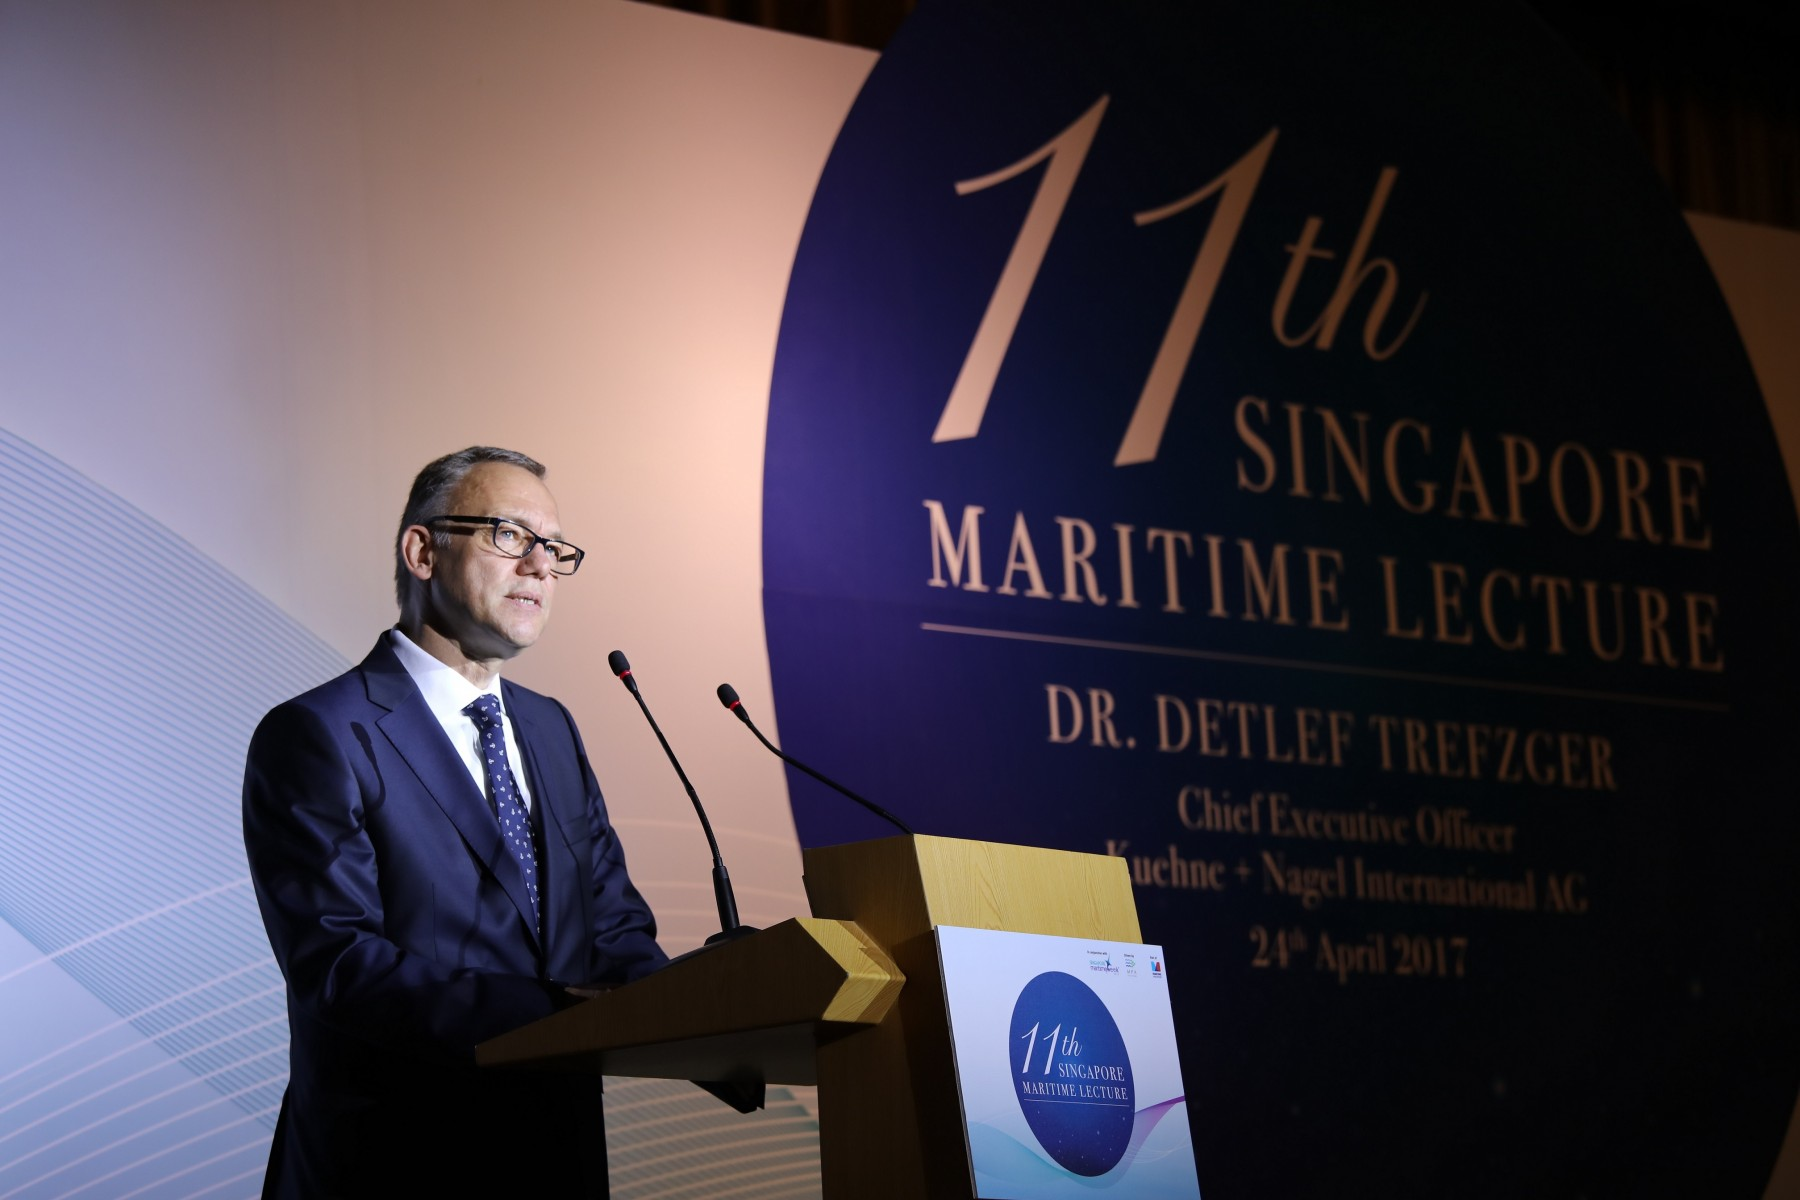 O Dr. Detleft Trefzger, CEO  της Kuehne + Nagel International AG και μέλος του nternational Maritime Centre (IMC) 2030 Advisory Committee